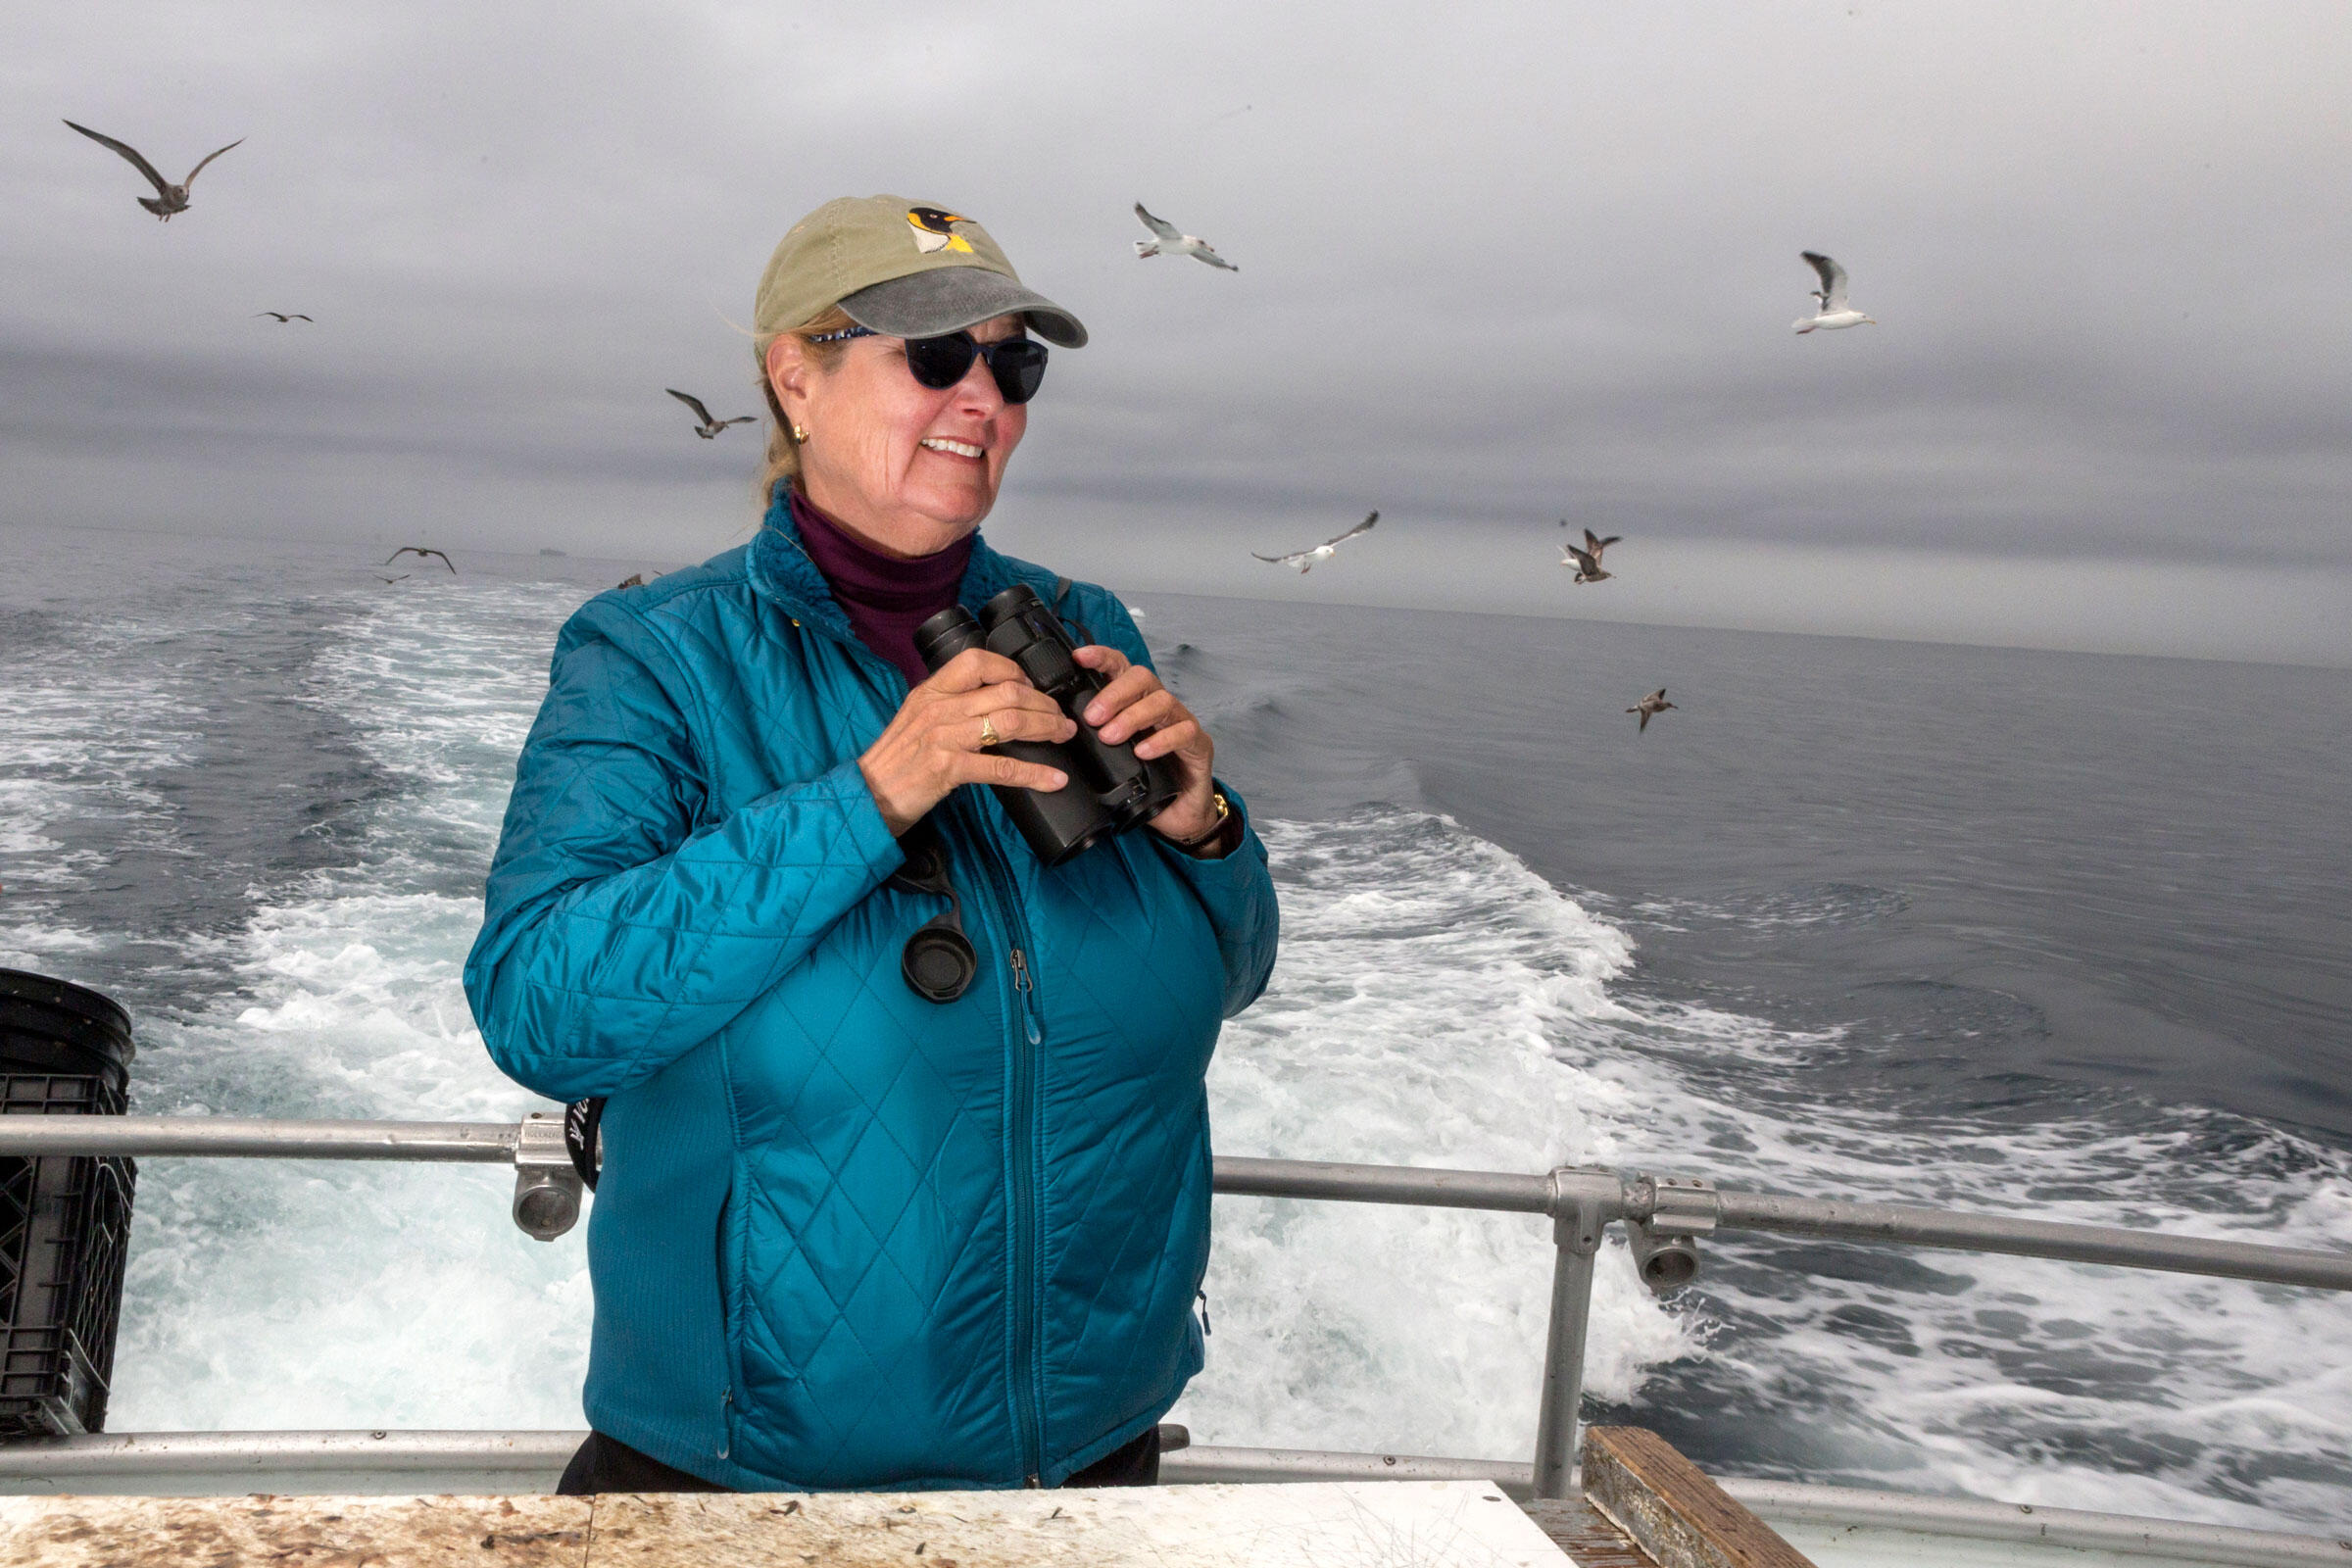 On one of Debi's first trips, the target was a Laysan Albatross. They had no luck—until she stopped to watch sperm whales. Then the rare bird appeared. Lauren Owens Lambert